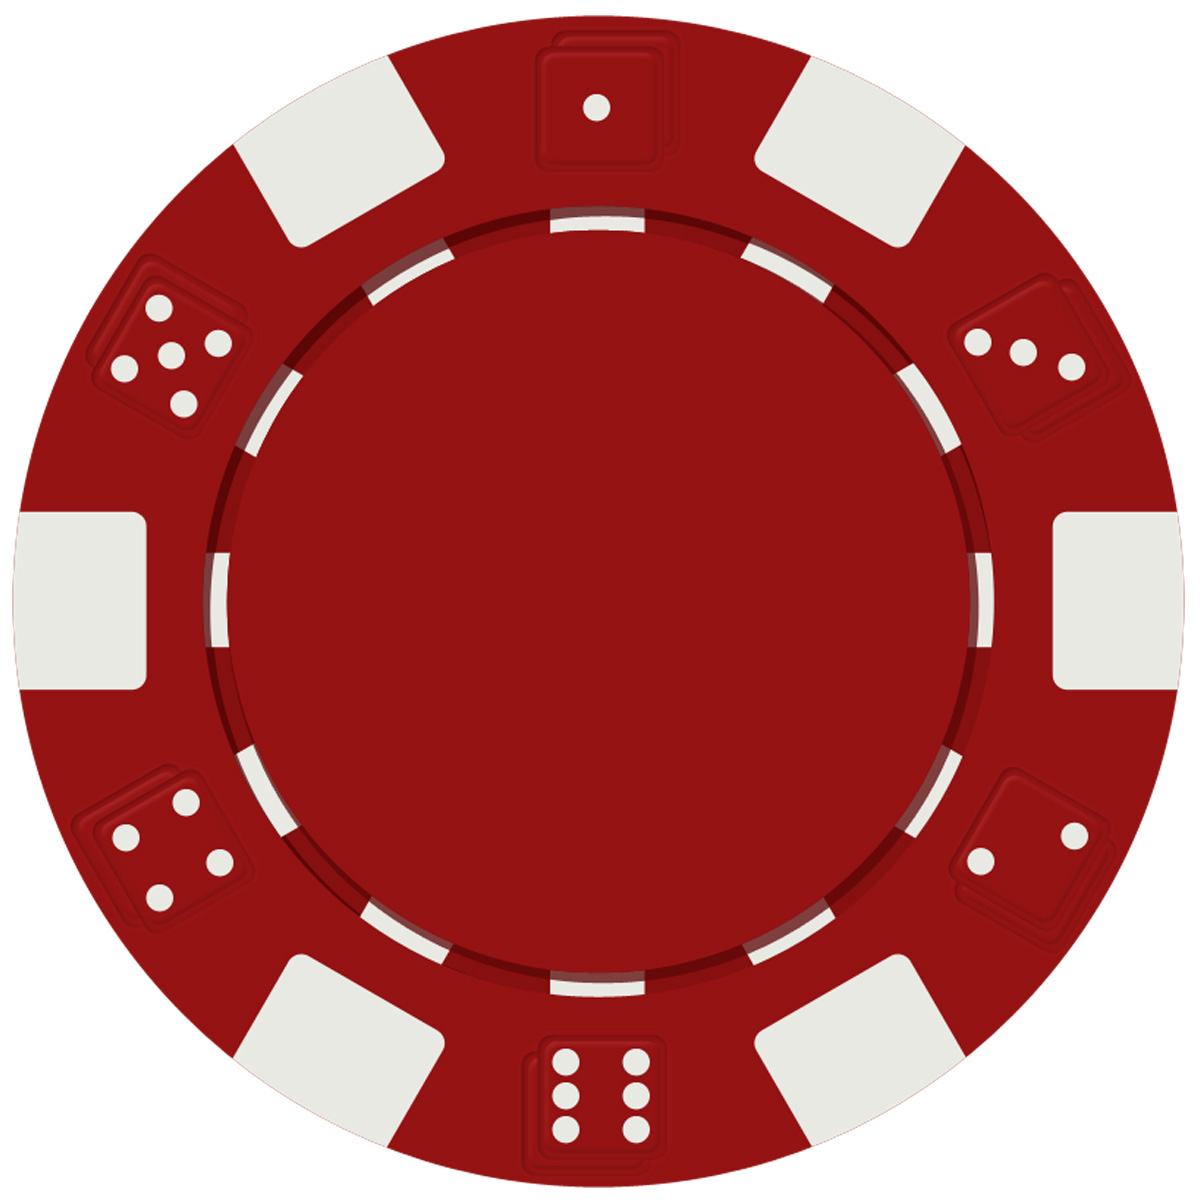 Chip clipart poker, Chip poker Transparent FREE for download.